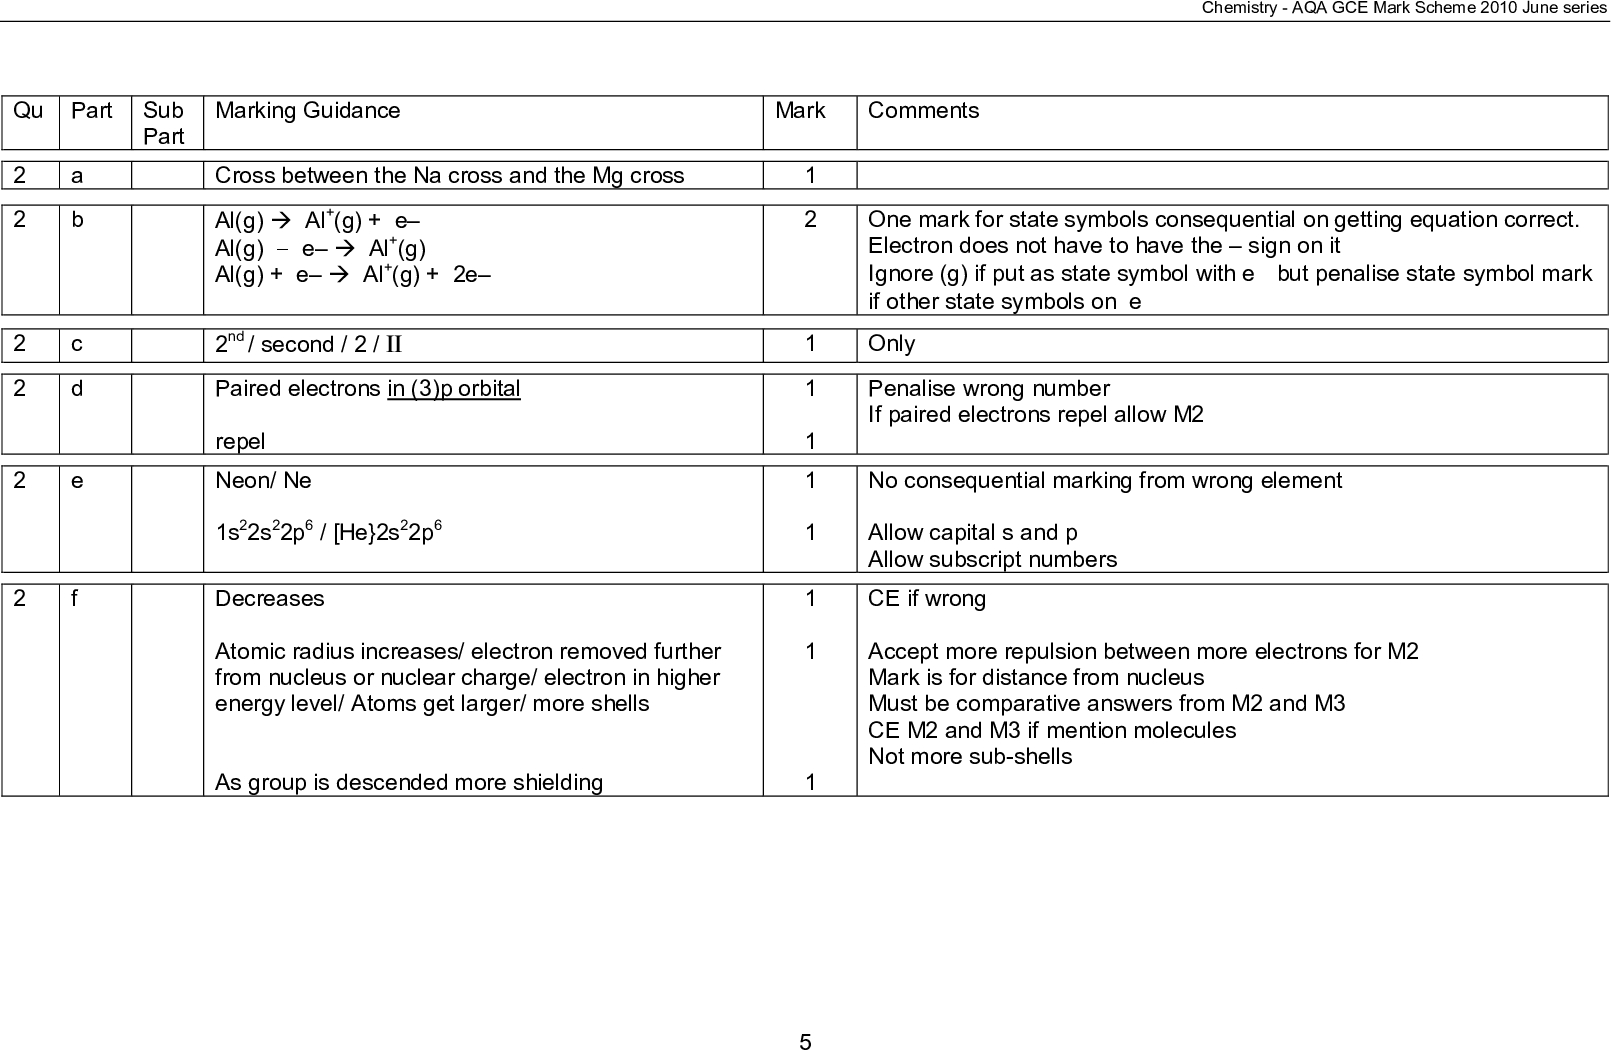 qu part sub part a b c d marking guidance mark comments chemistry aqa gce mark scheme june series one mark for state symbols consequential on getting equation correct electron does not have to have the sign on it ignore g if put as state symbol with e but penalise state symbol mark if other state symbols on e only penalise wrong number if paired electrons repel allow m no consequential marking from wrong element allow capital s and p allow subscript numbers ce if wrong accept more repulsion between more electrons for m mark is for distance from nucleus must be comparative answers from m and m ce m and m if mention molecules not more sub shells cross between the na cross and the mg cross al g al g e al g e al g al g e al g e nd second ii paired electrons in p orbital repel neon ne s s p he s p decreases atomic radius increases electron removed further from nucleus or nuclear charge electron in higher energy level atoms get larger more shells as group is descended more shielding